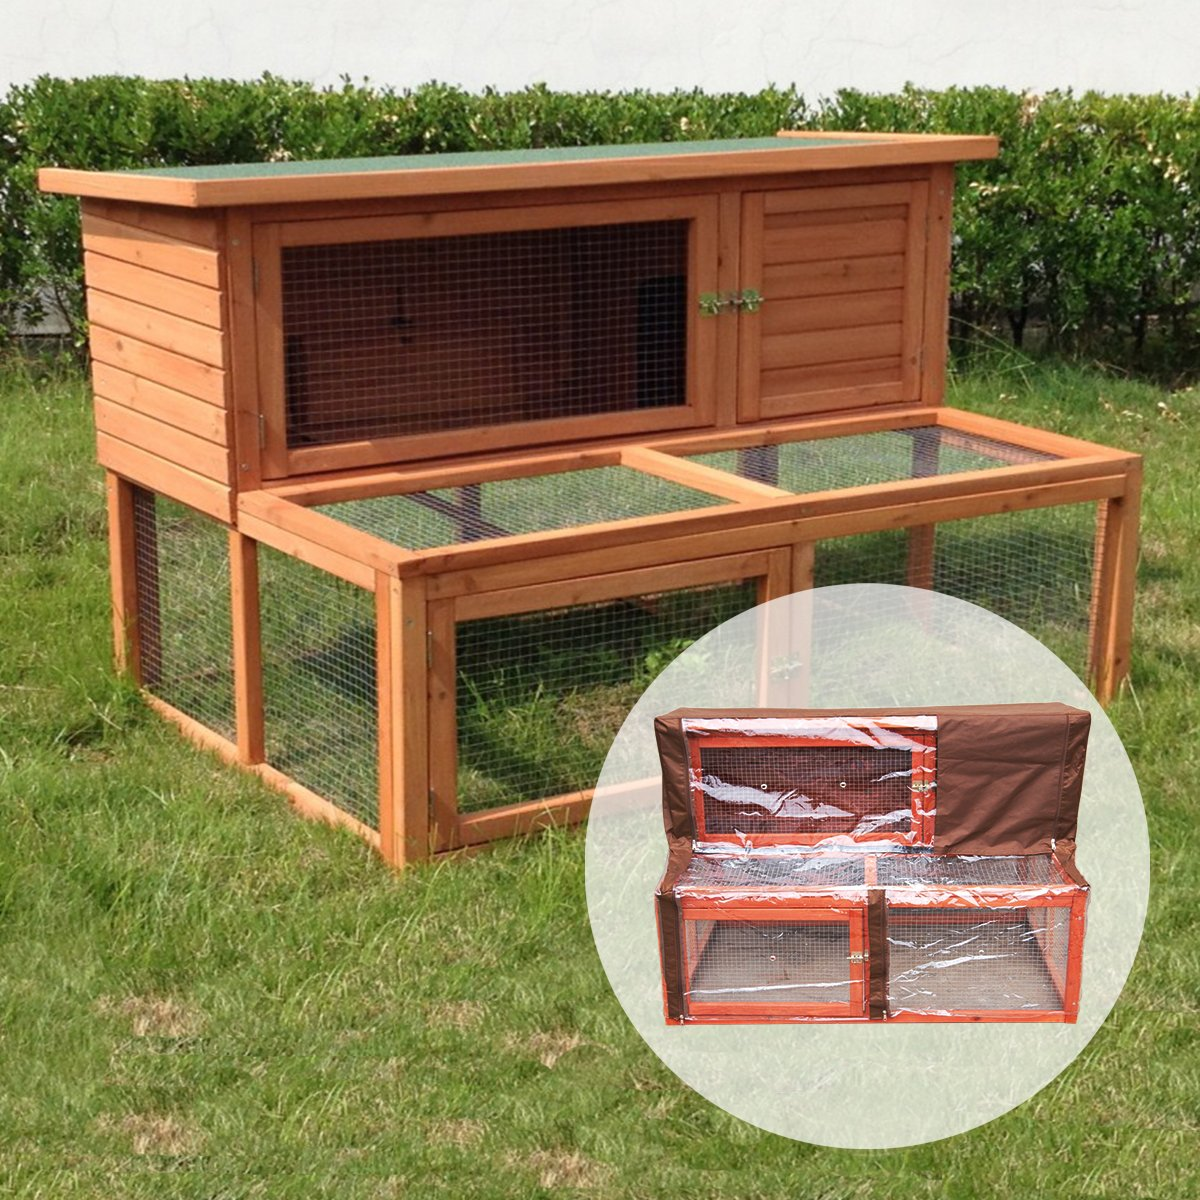 KCT Ancona 4ft Wooden Rabbit Hutch with Extending Run with Cover